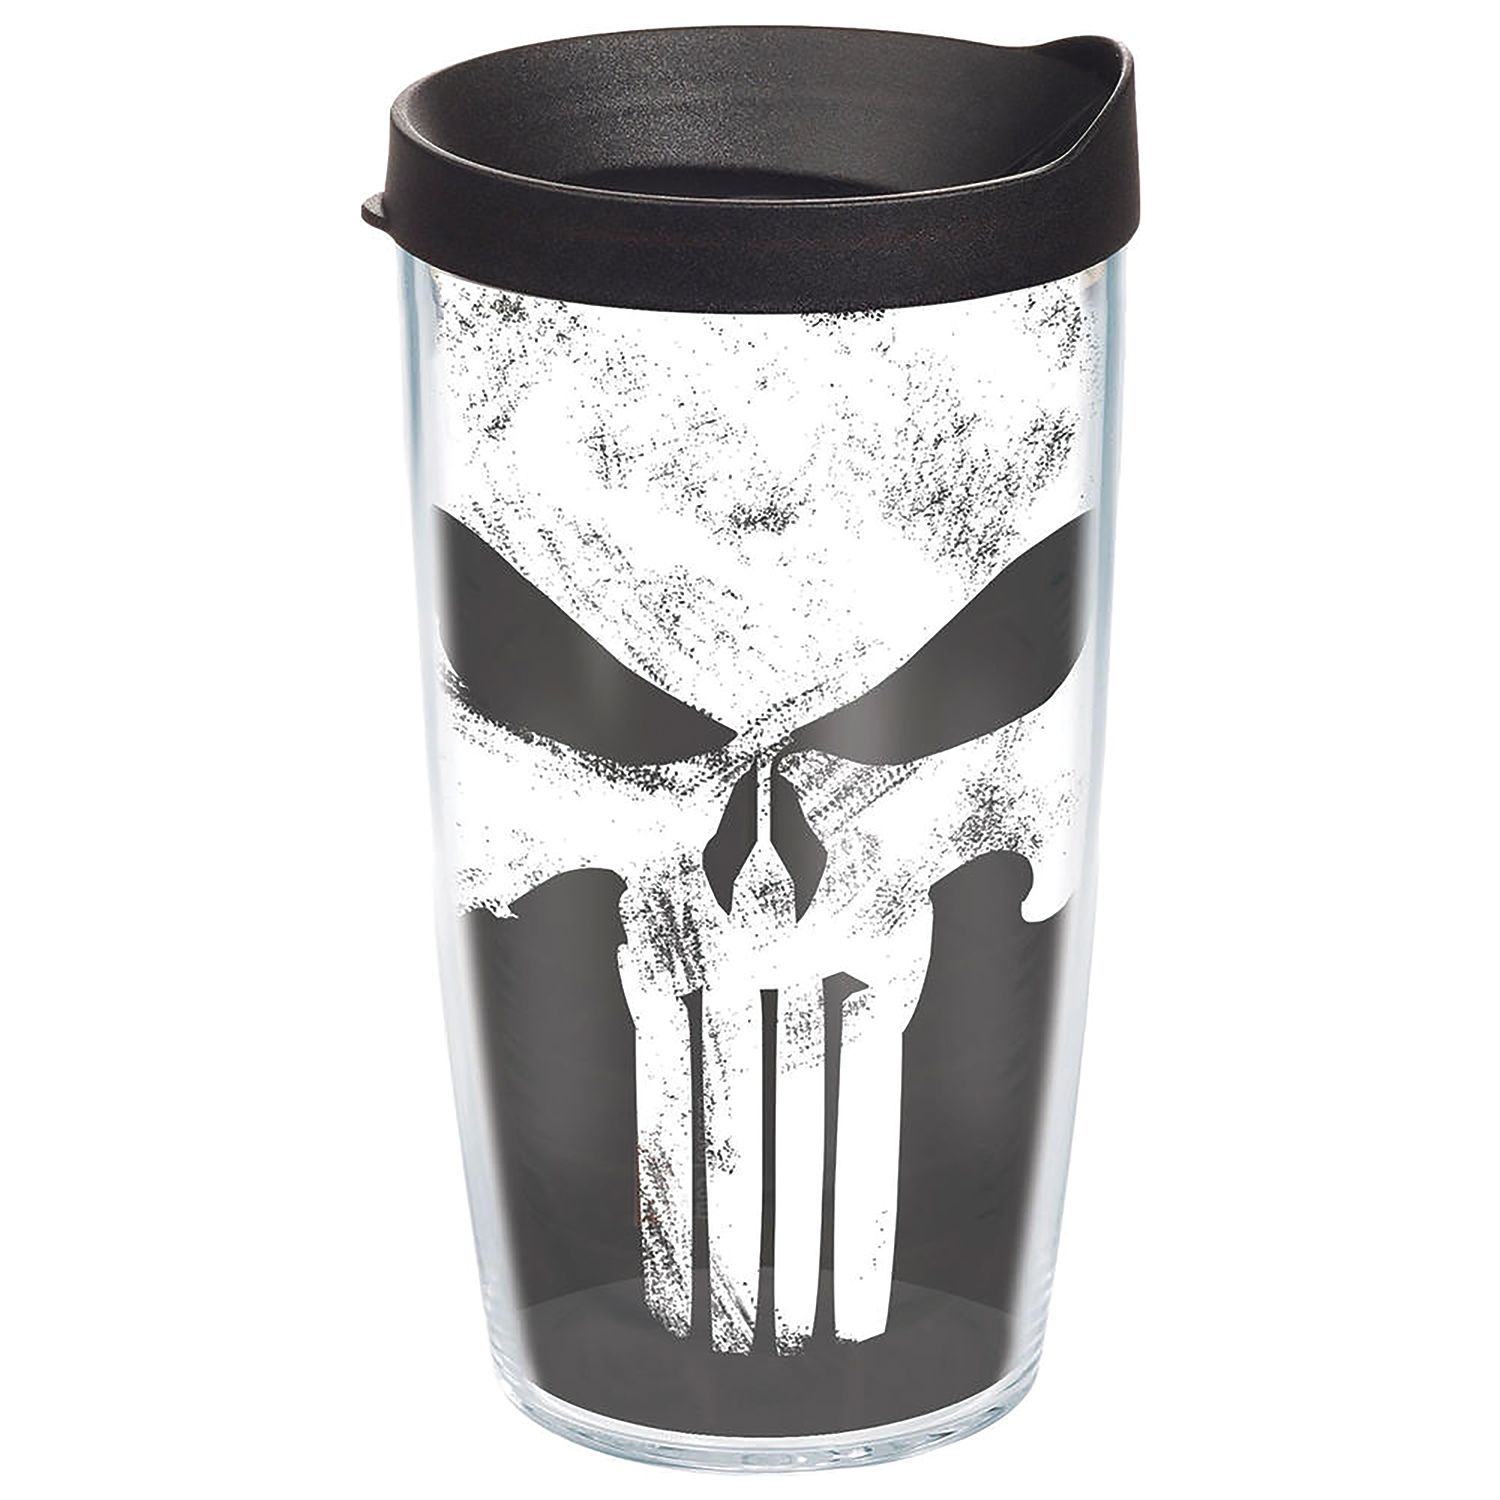 The Punisher Tervis 16oz Tumbler with Lid